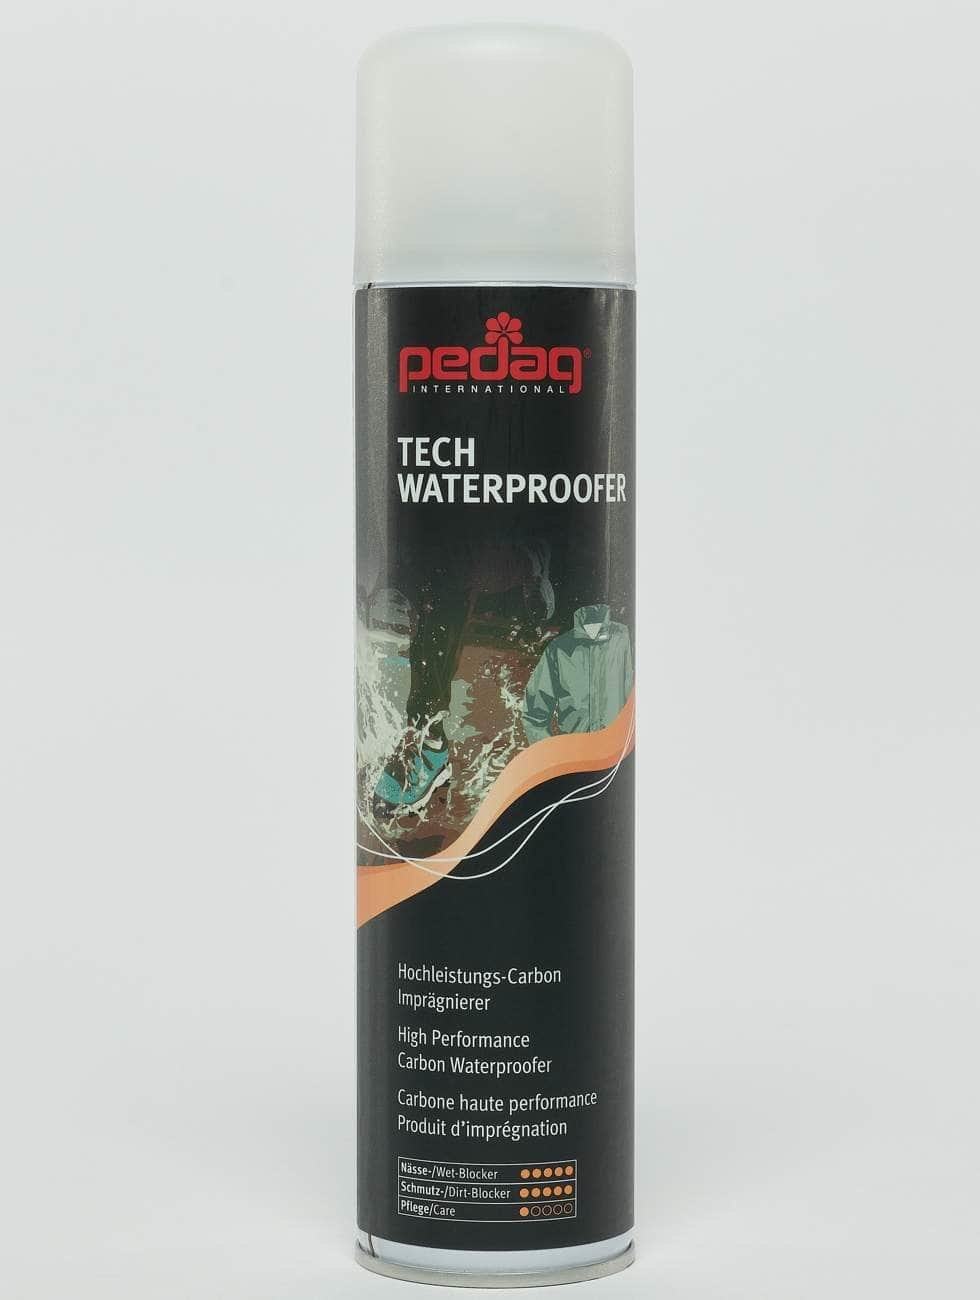 Pedag Skopleie Tech Waterproofer mangefarget